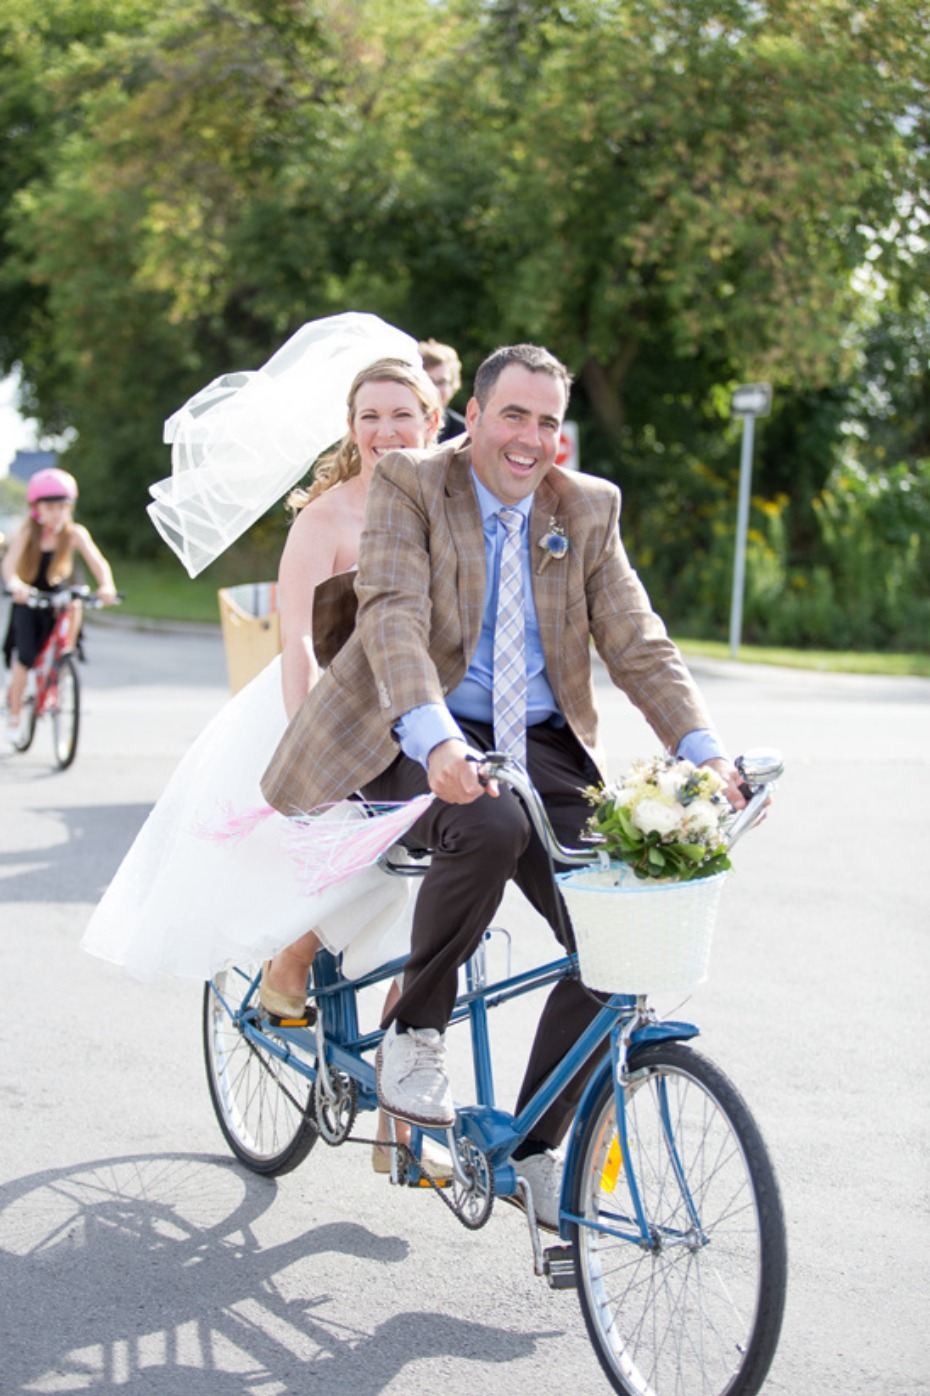 Arrive and Depart in Style with These Wedding Transportation Ideas